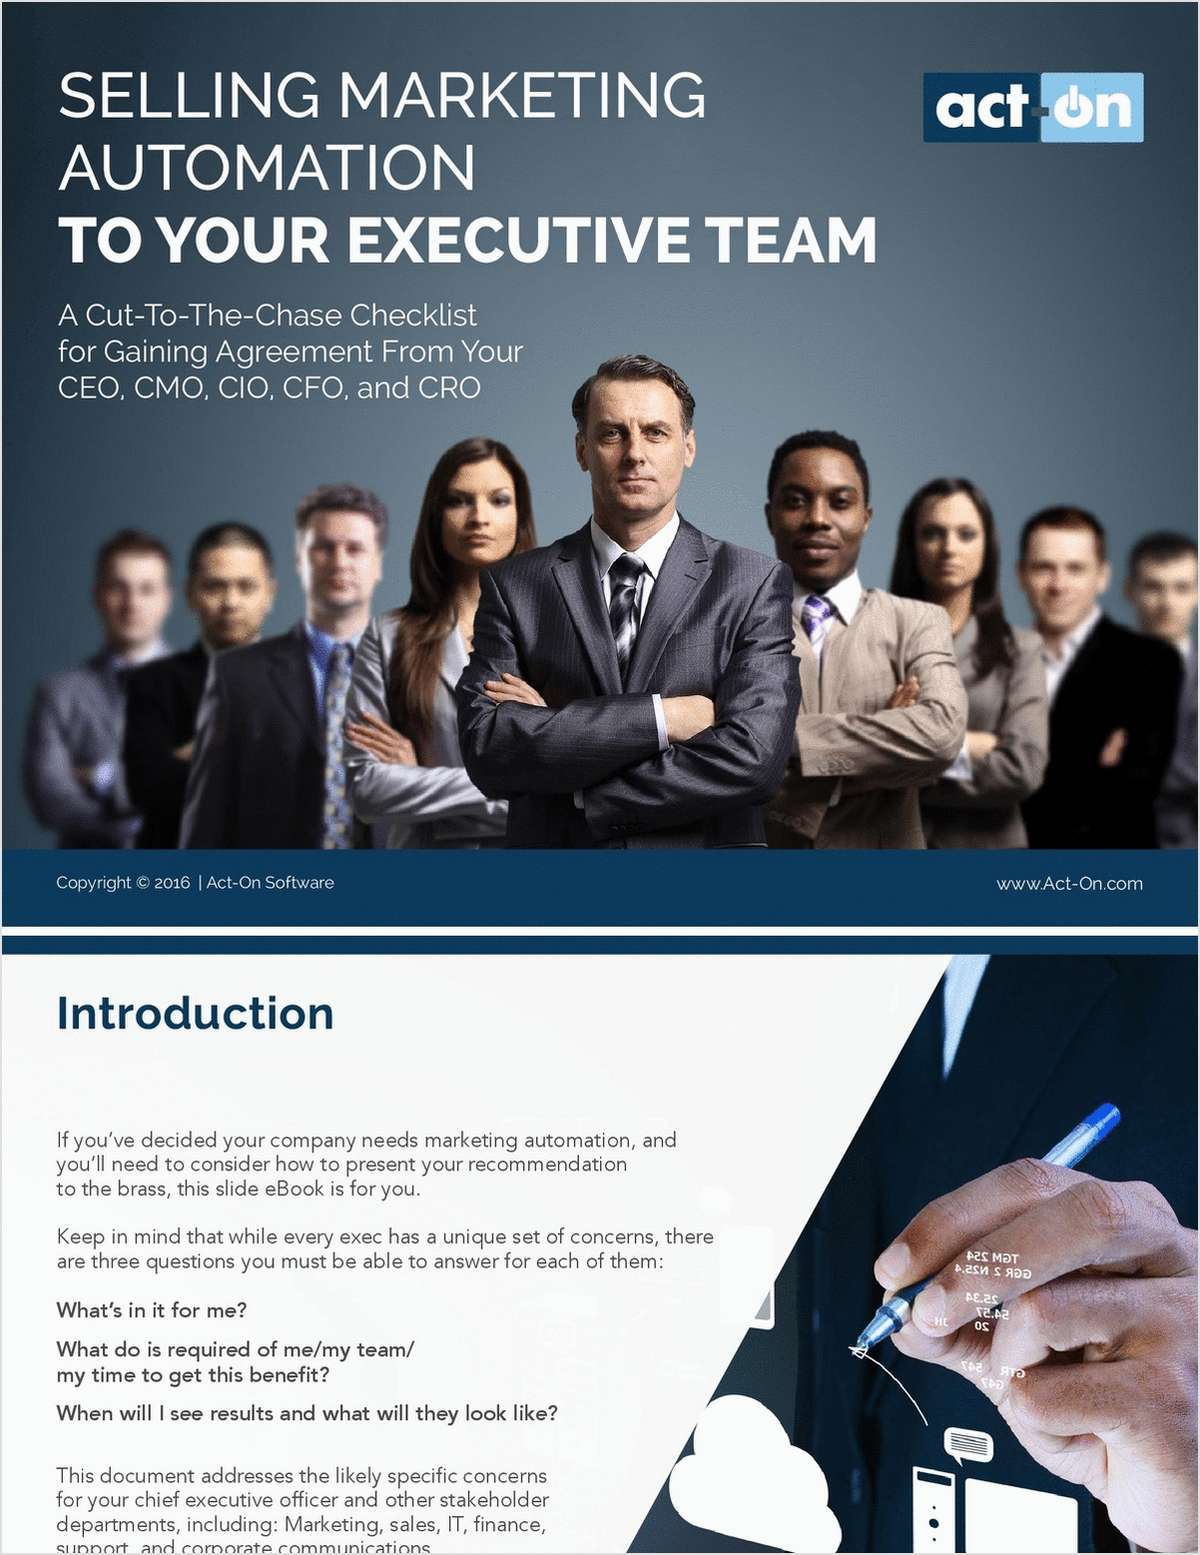 Selling Marketing Automation to Your Executive Team